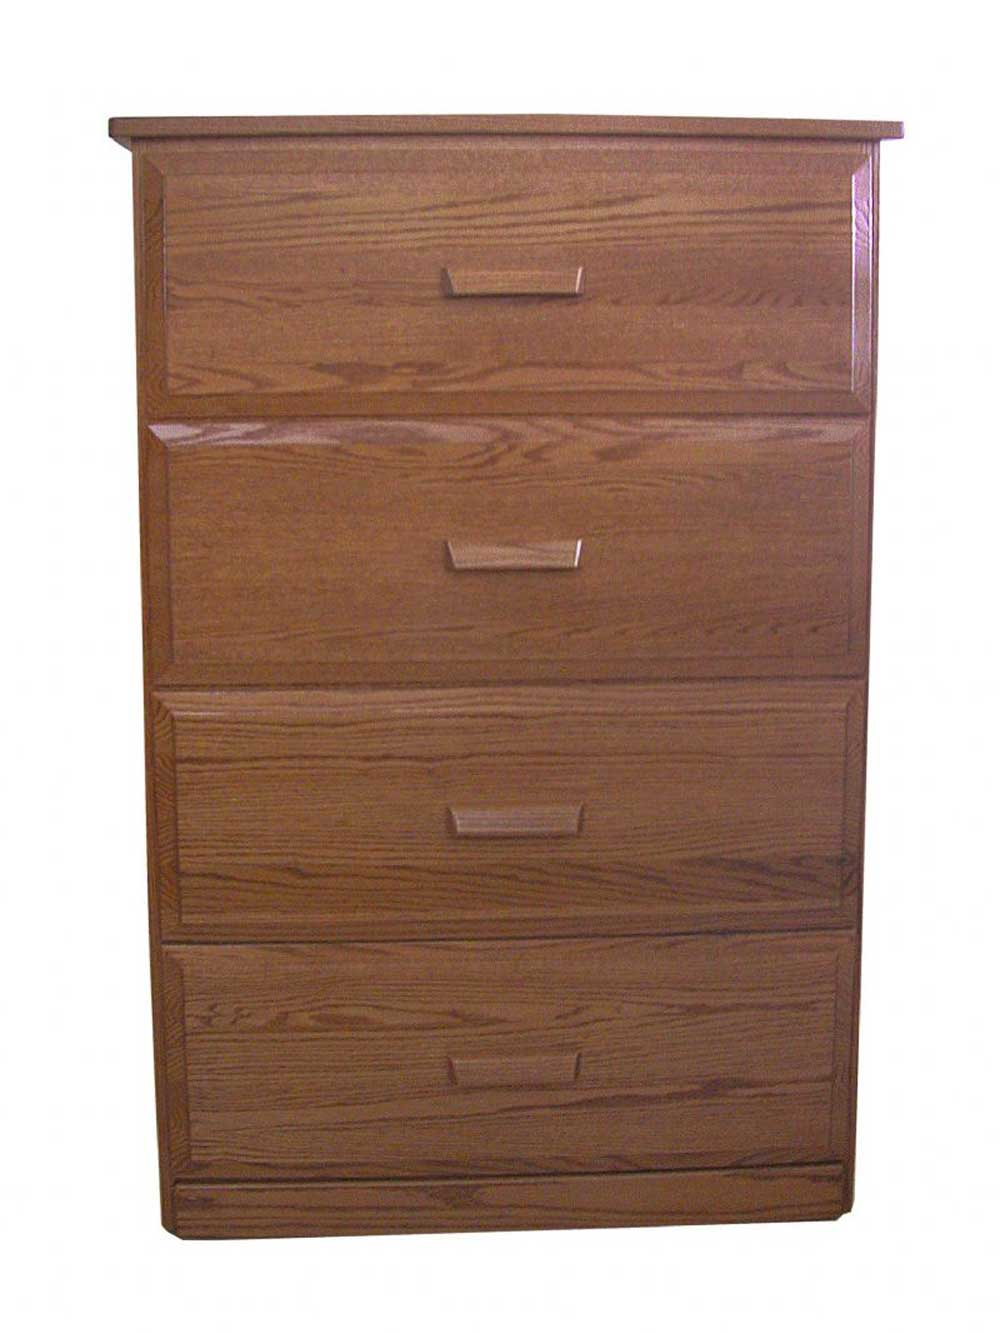 Amish Lateral Wood Filing Cabinet with Four Drawers